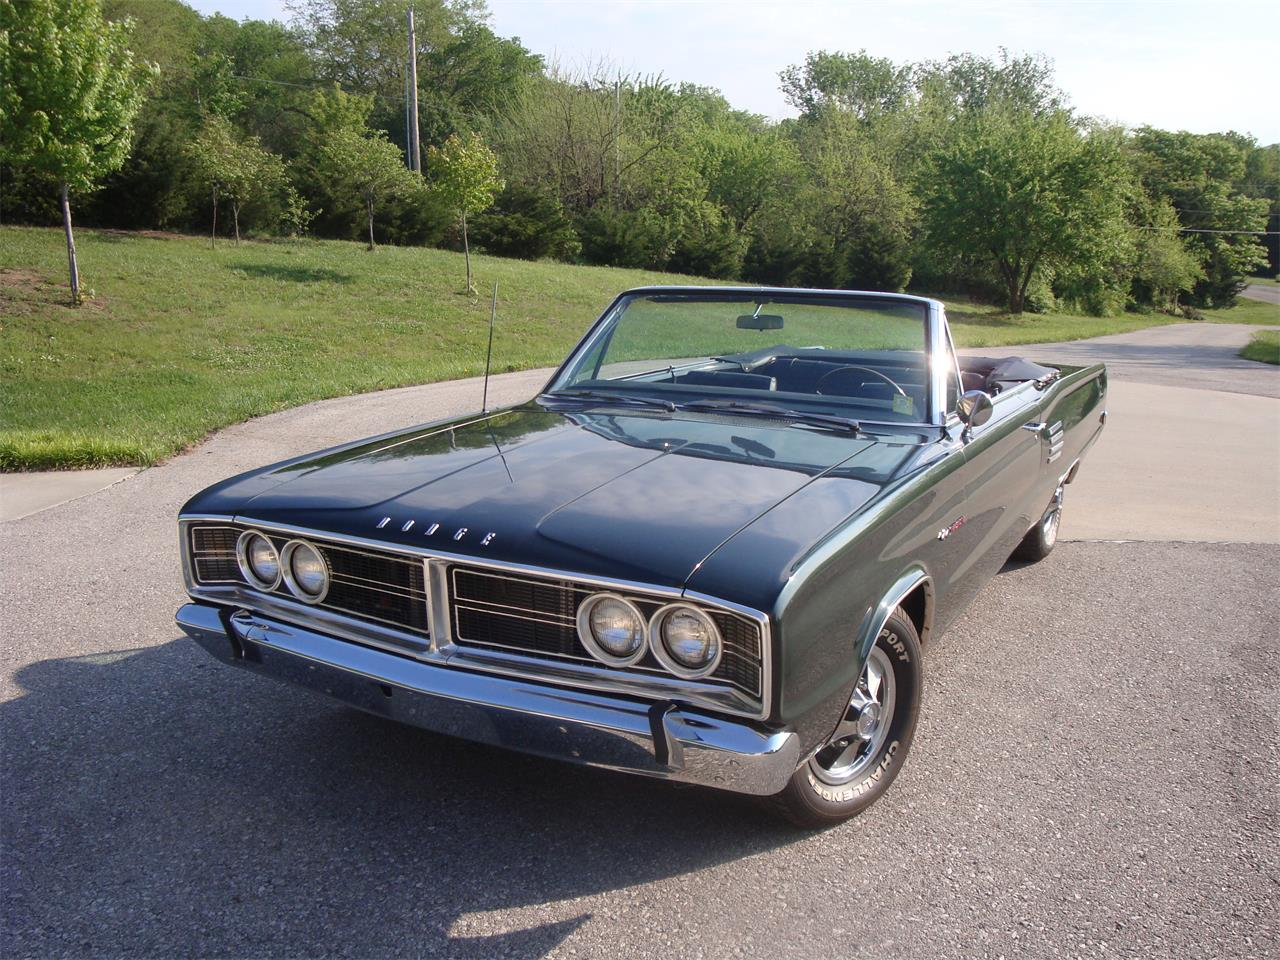 Large Picture of 1966 Coronet 500 located in Knoxville Tennessee Offered by a Private Seller - EA1M